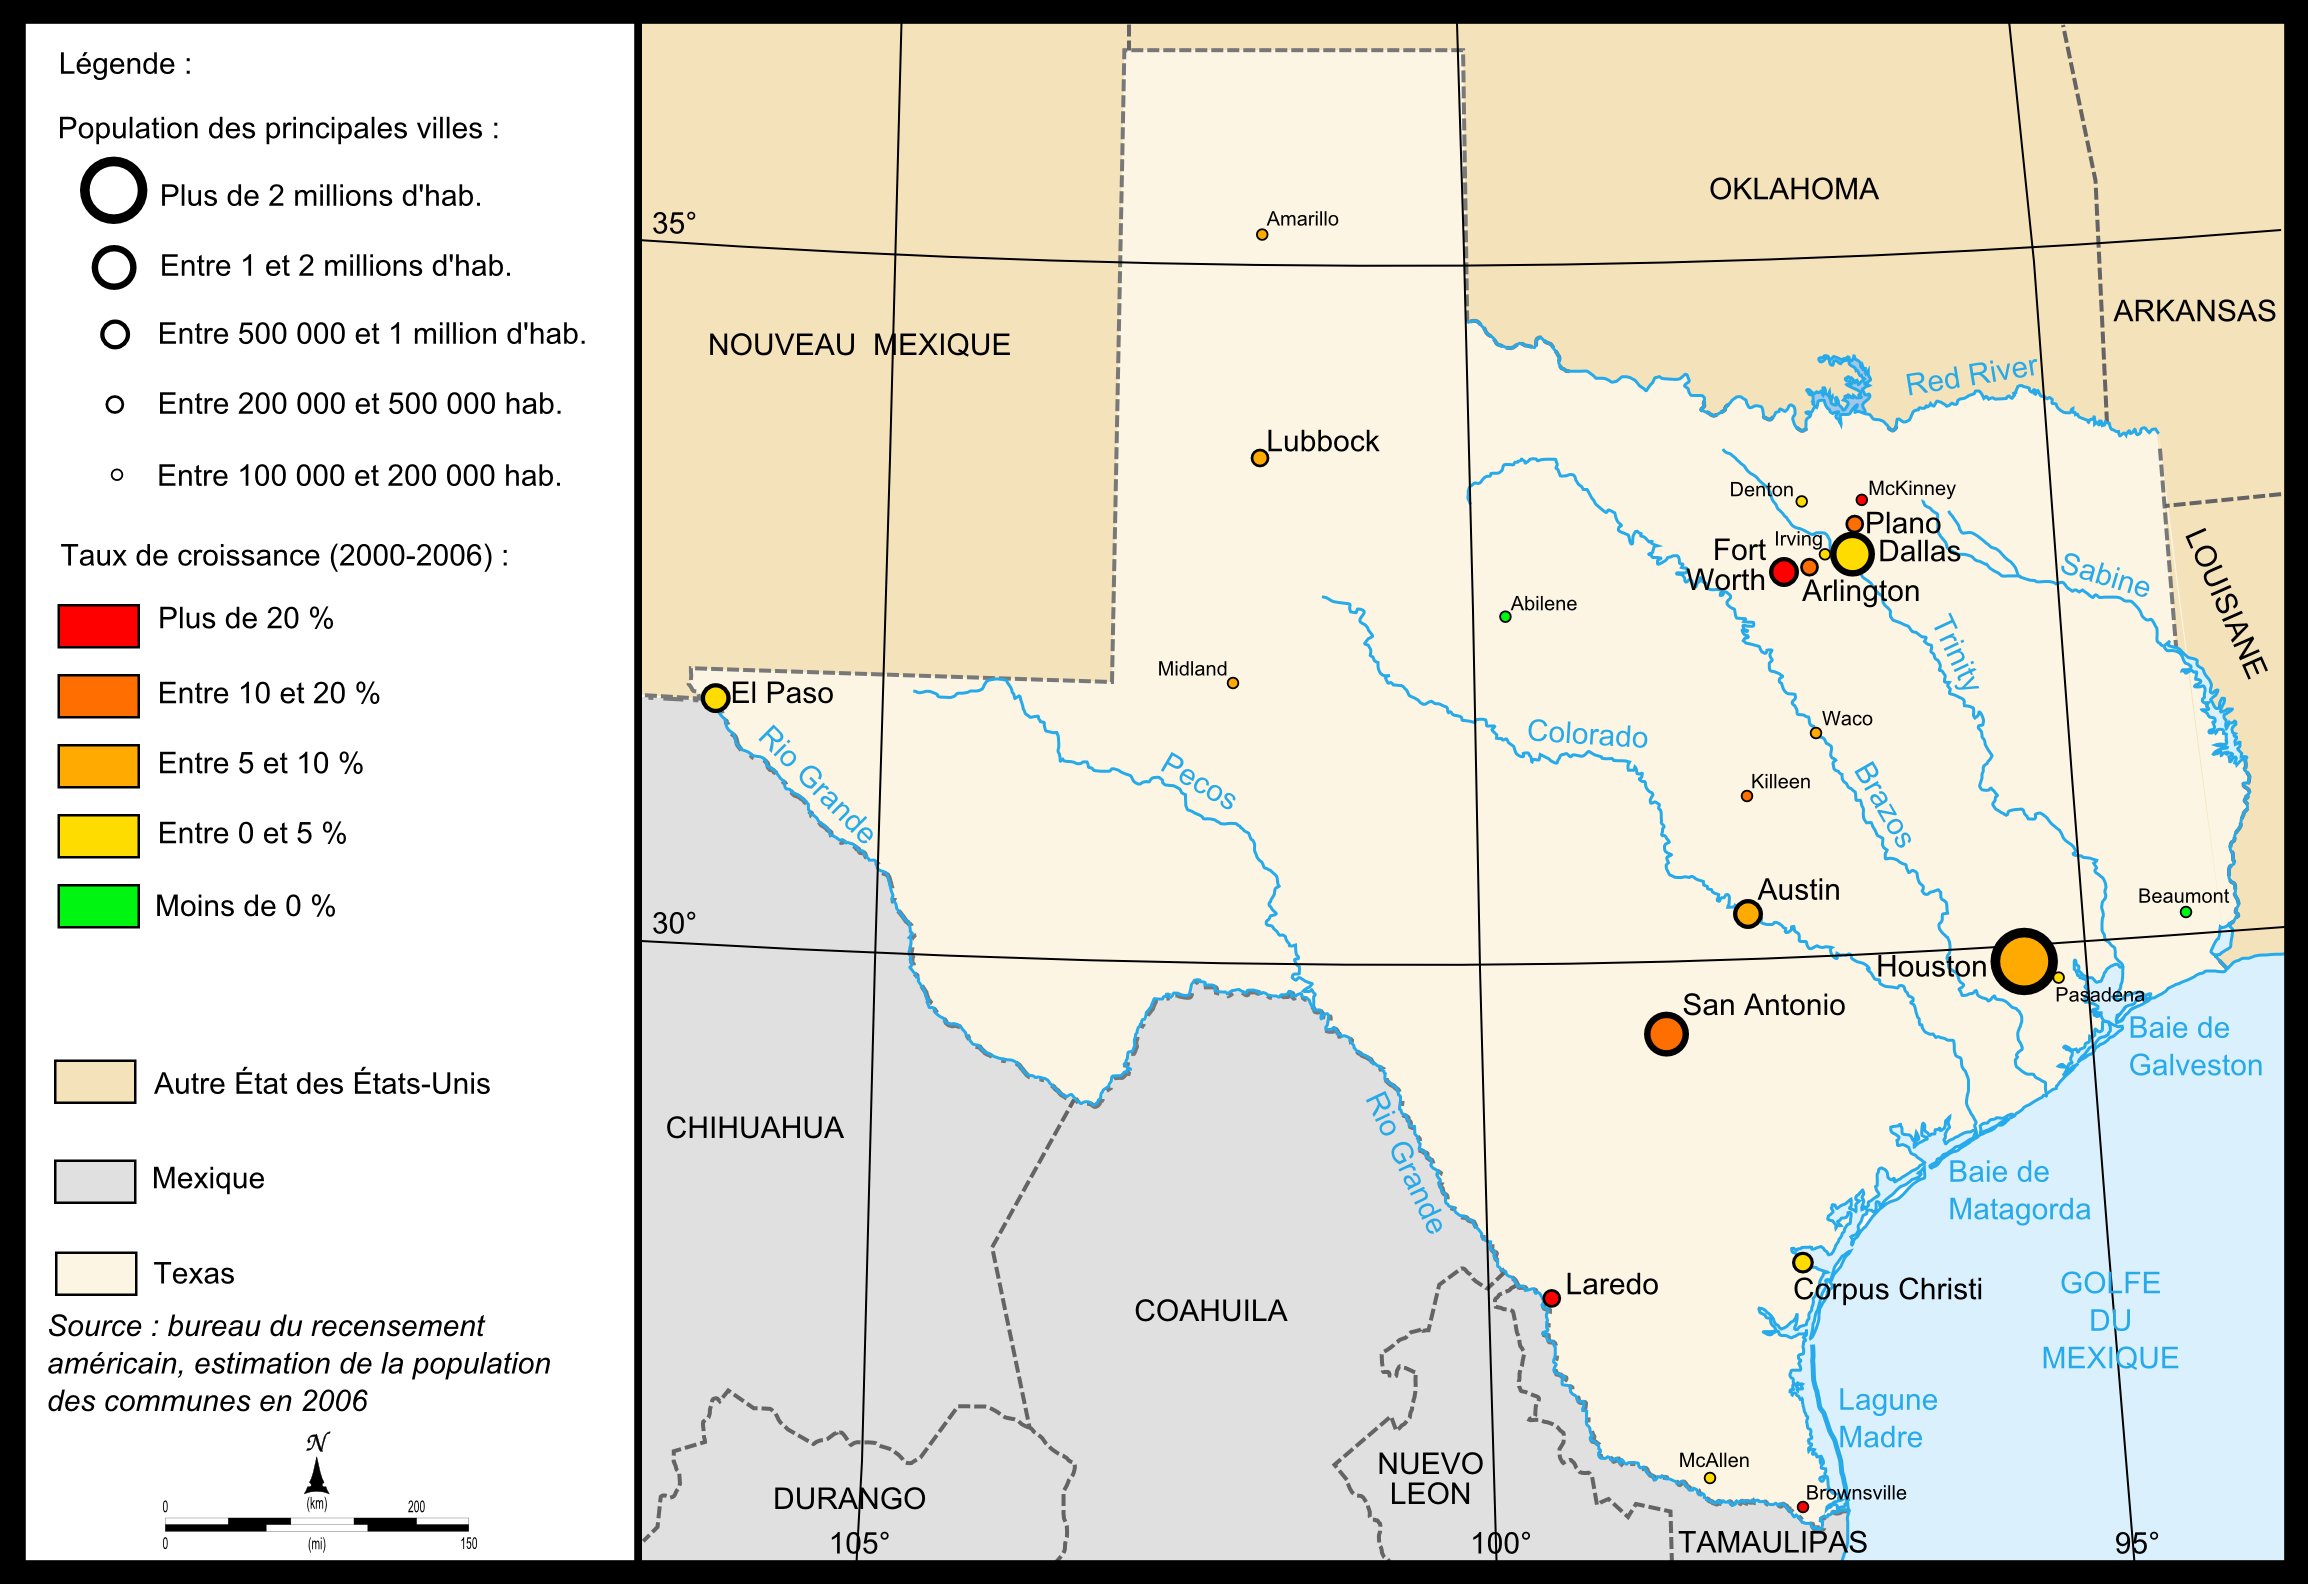 FileMap Of Texas Citiespng Wikimedia Commons - Map of texas cities and rivers